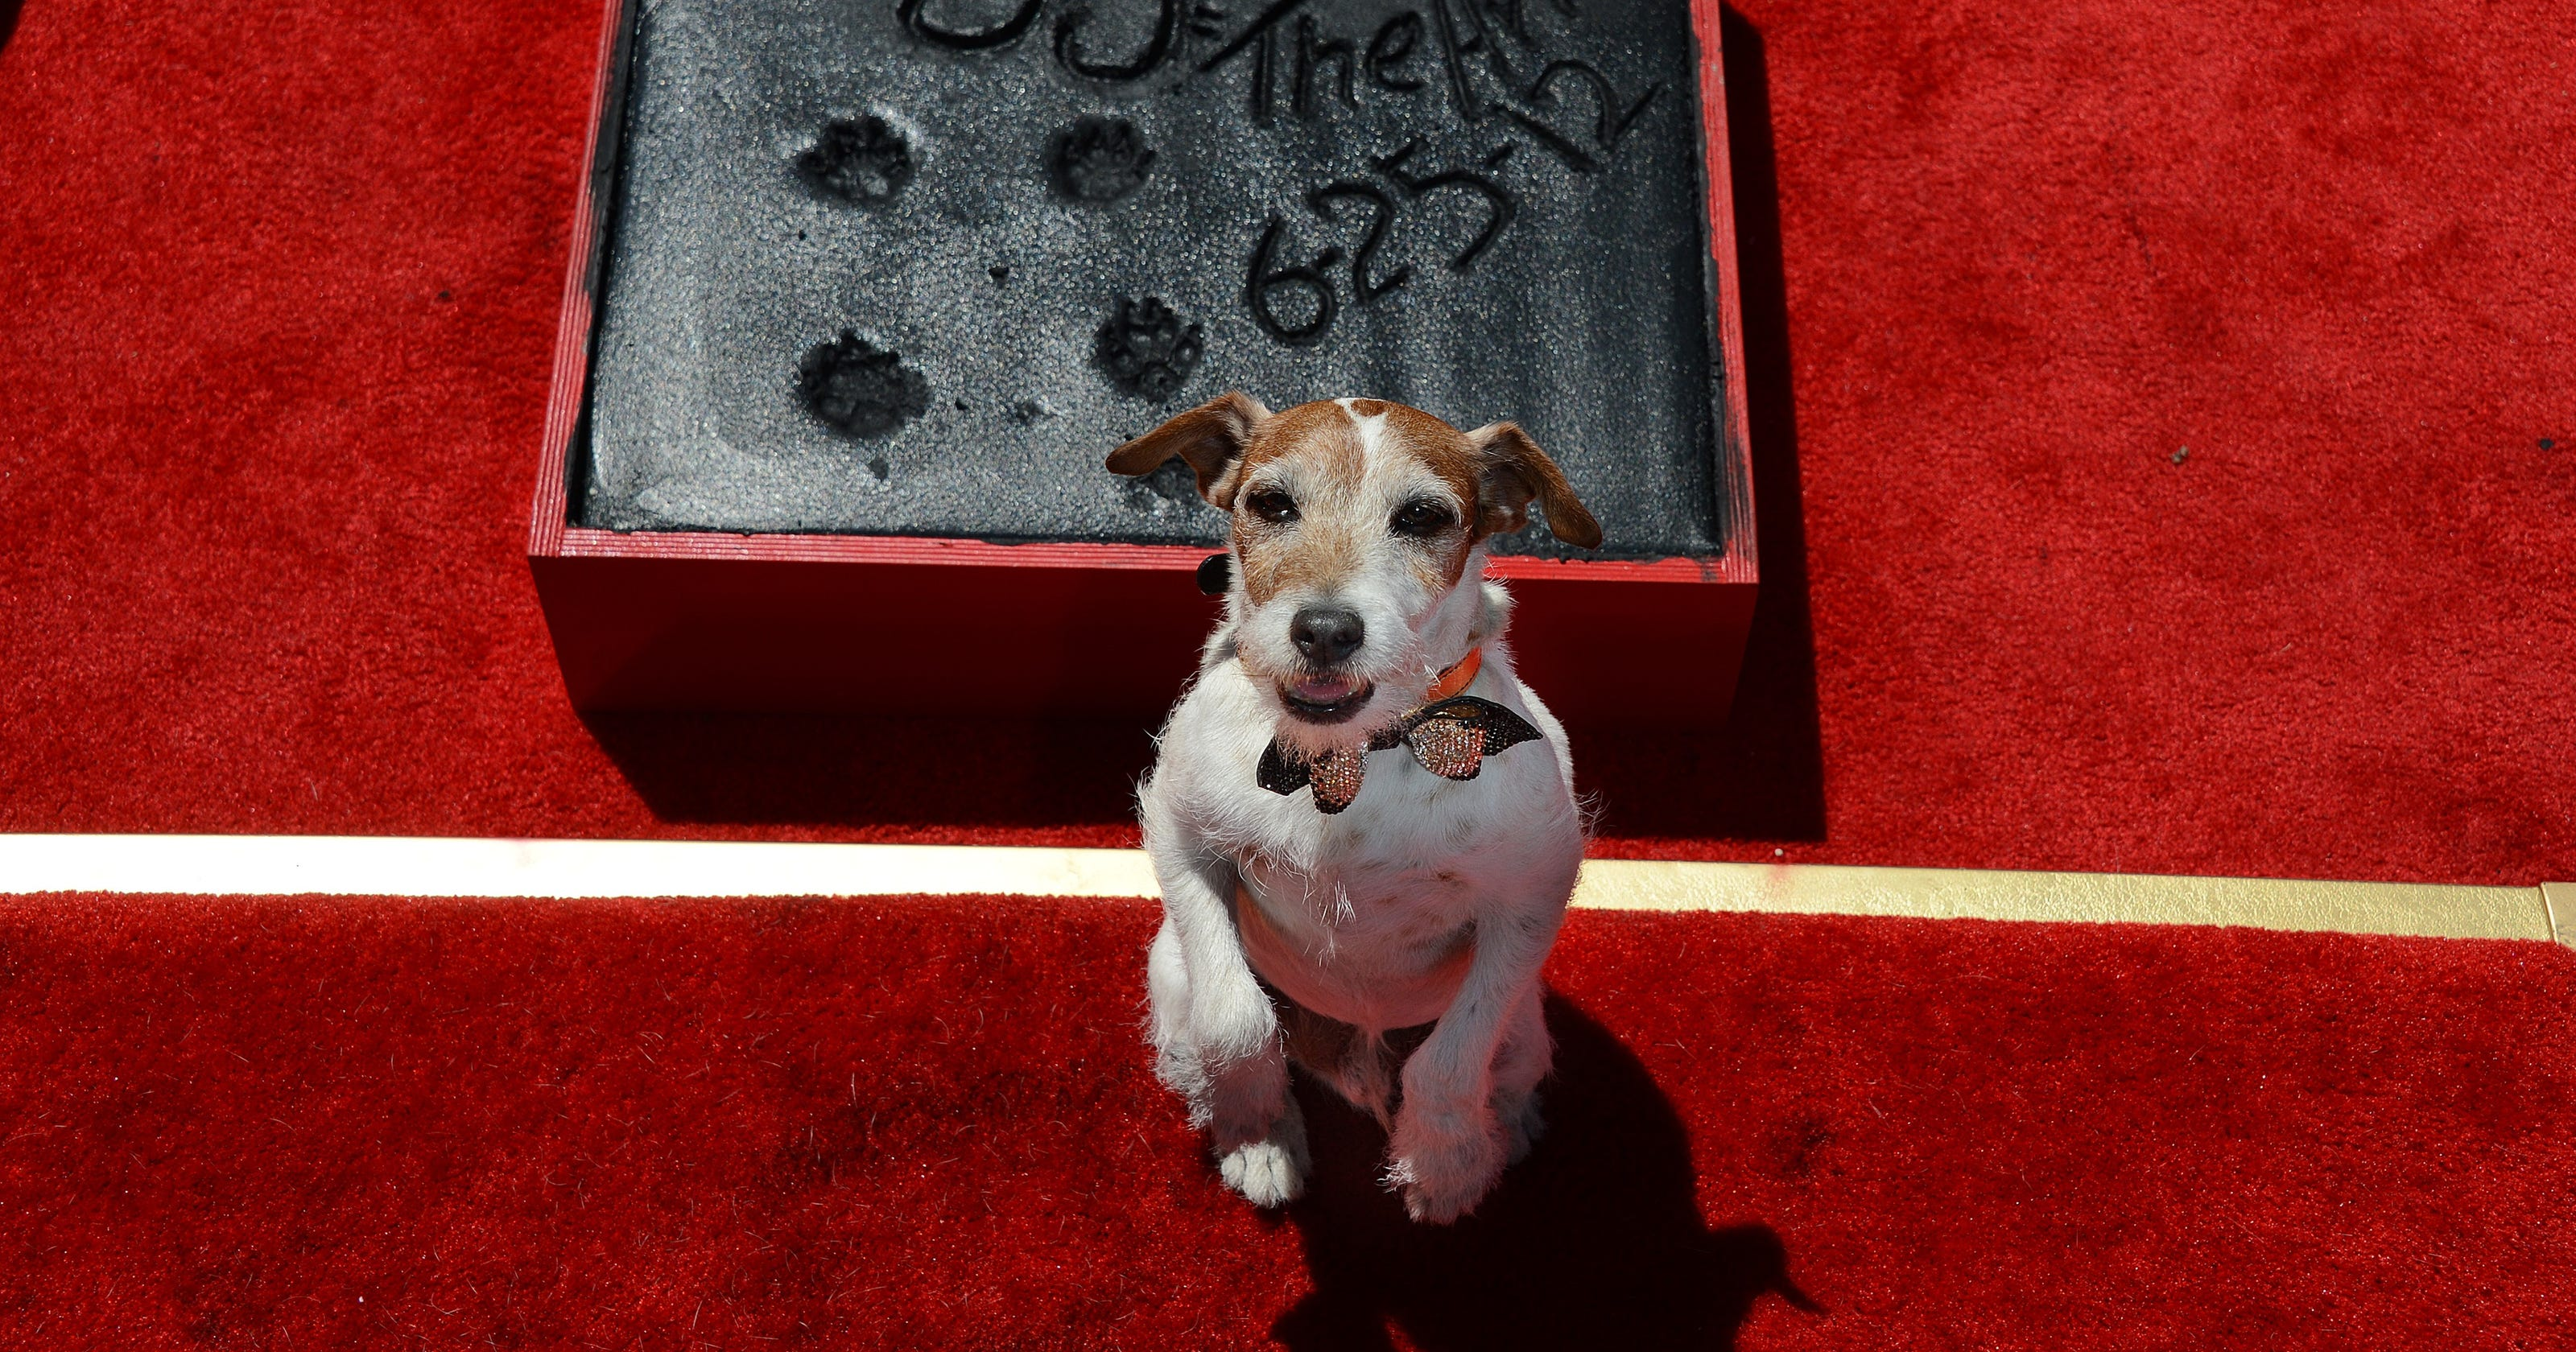 quality design d4cfb 15baa Uggie, the dog star of The Artist, dies at 13